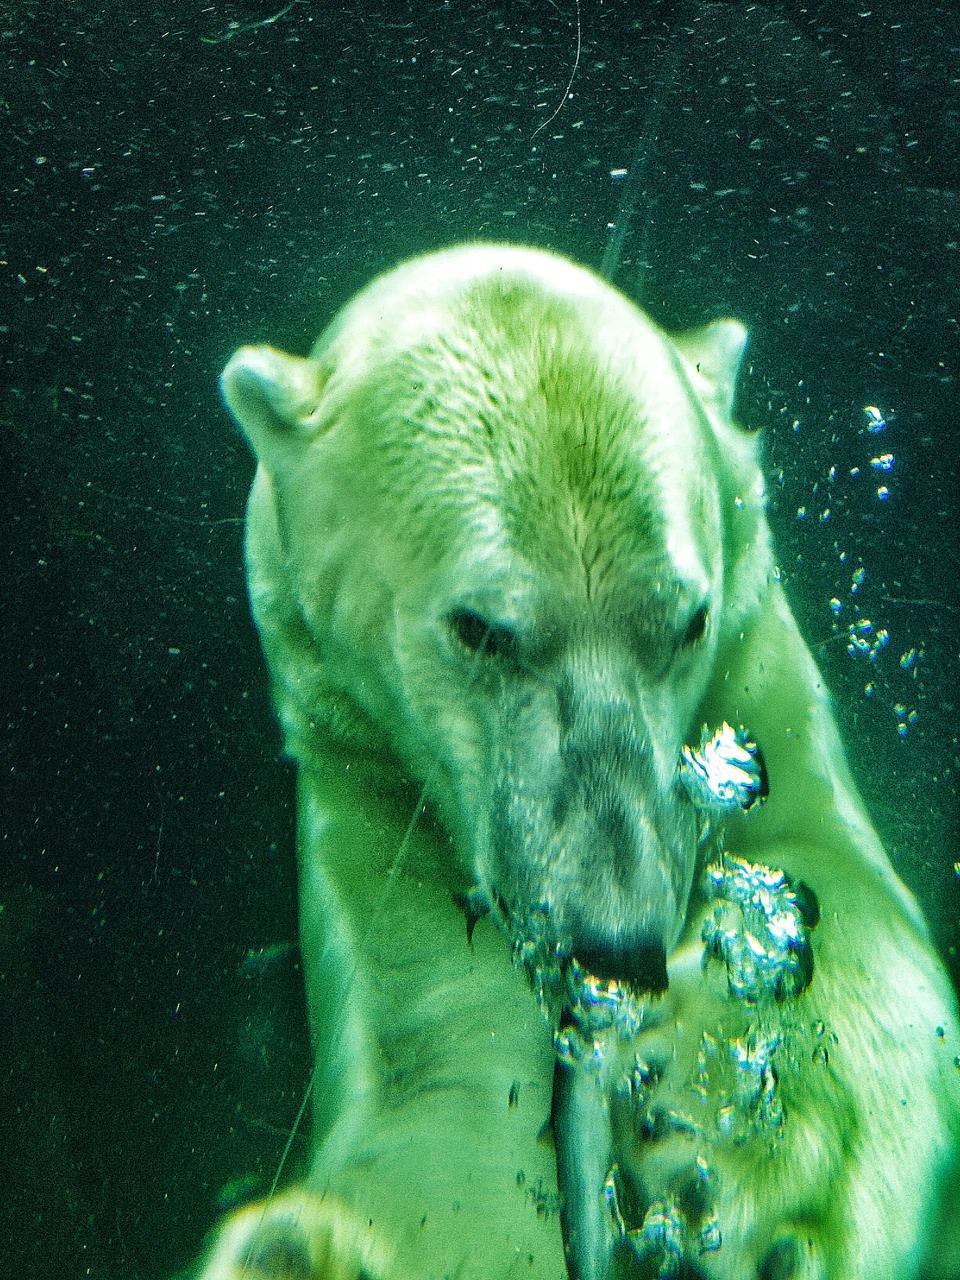 Polarbear swimming in Copenhagen zoo